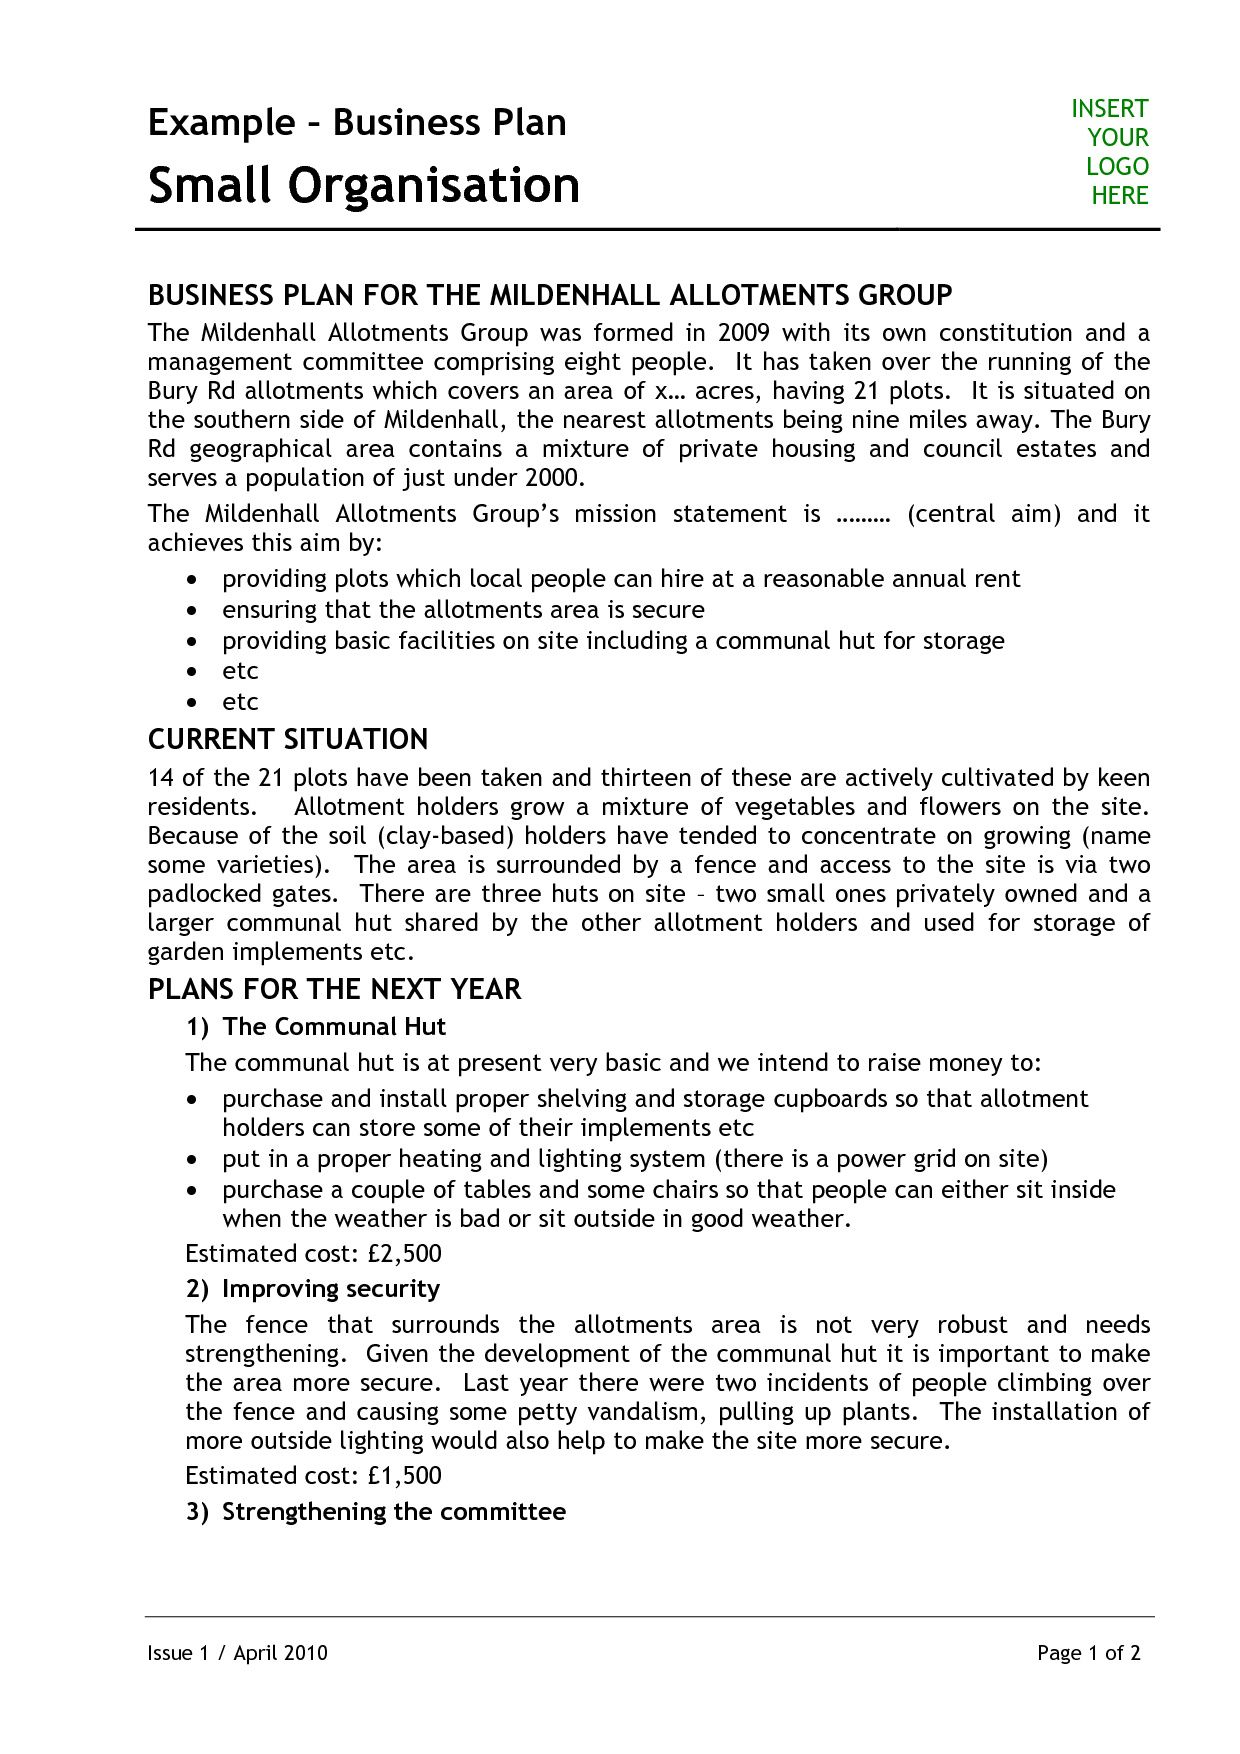 Template For Writing A Music Business Plan Business Proposal Template Business Plan Example Small Business Plan Template